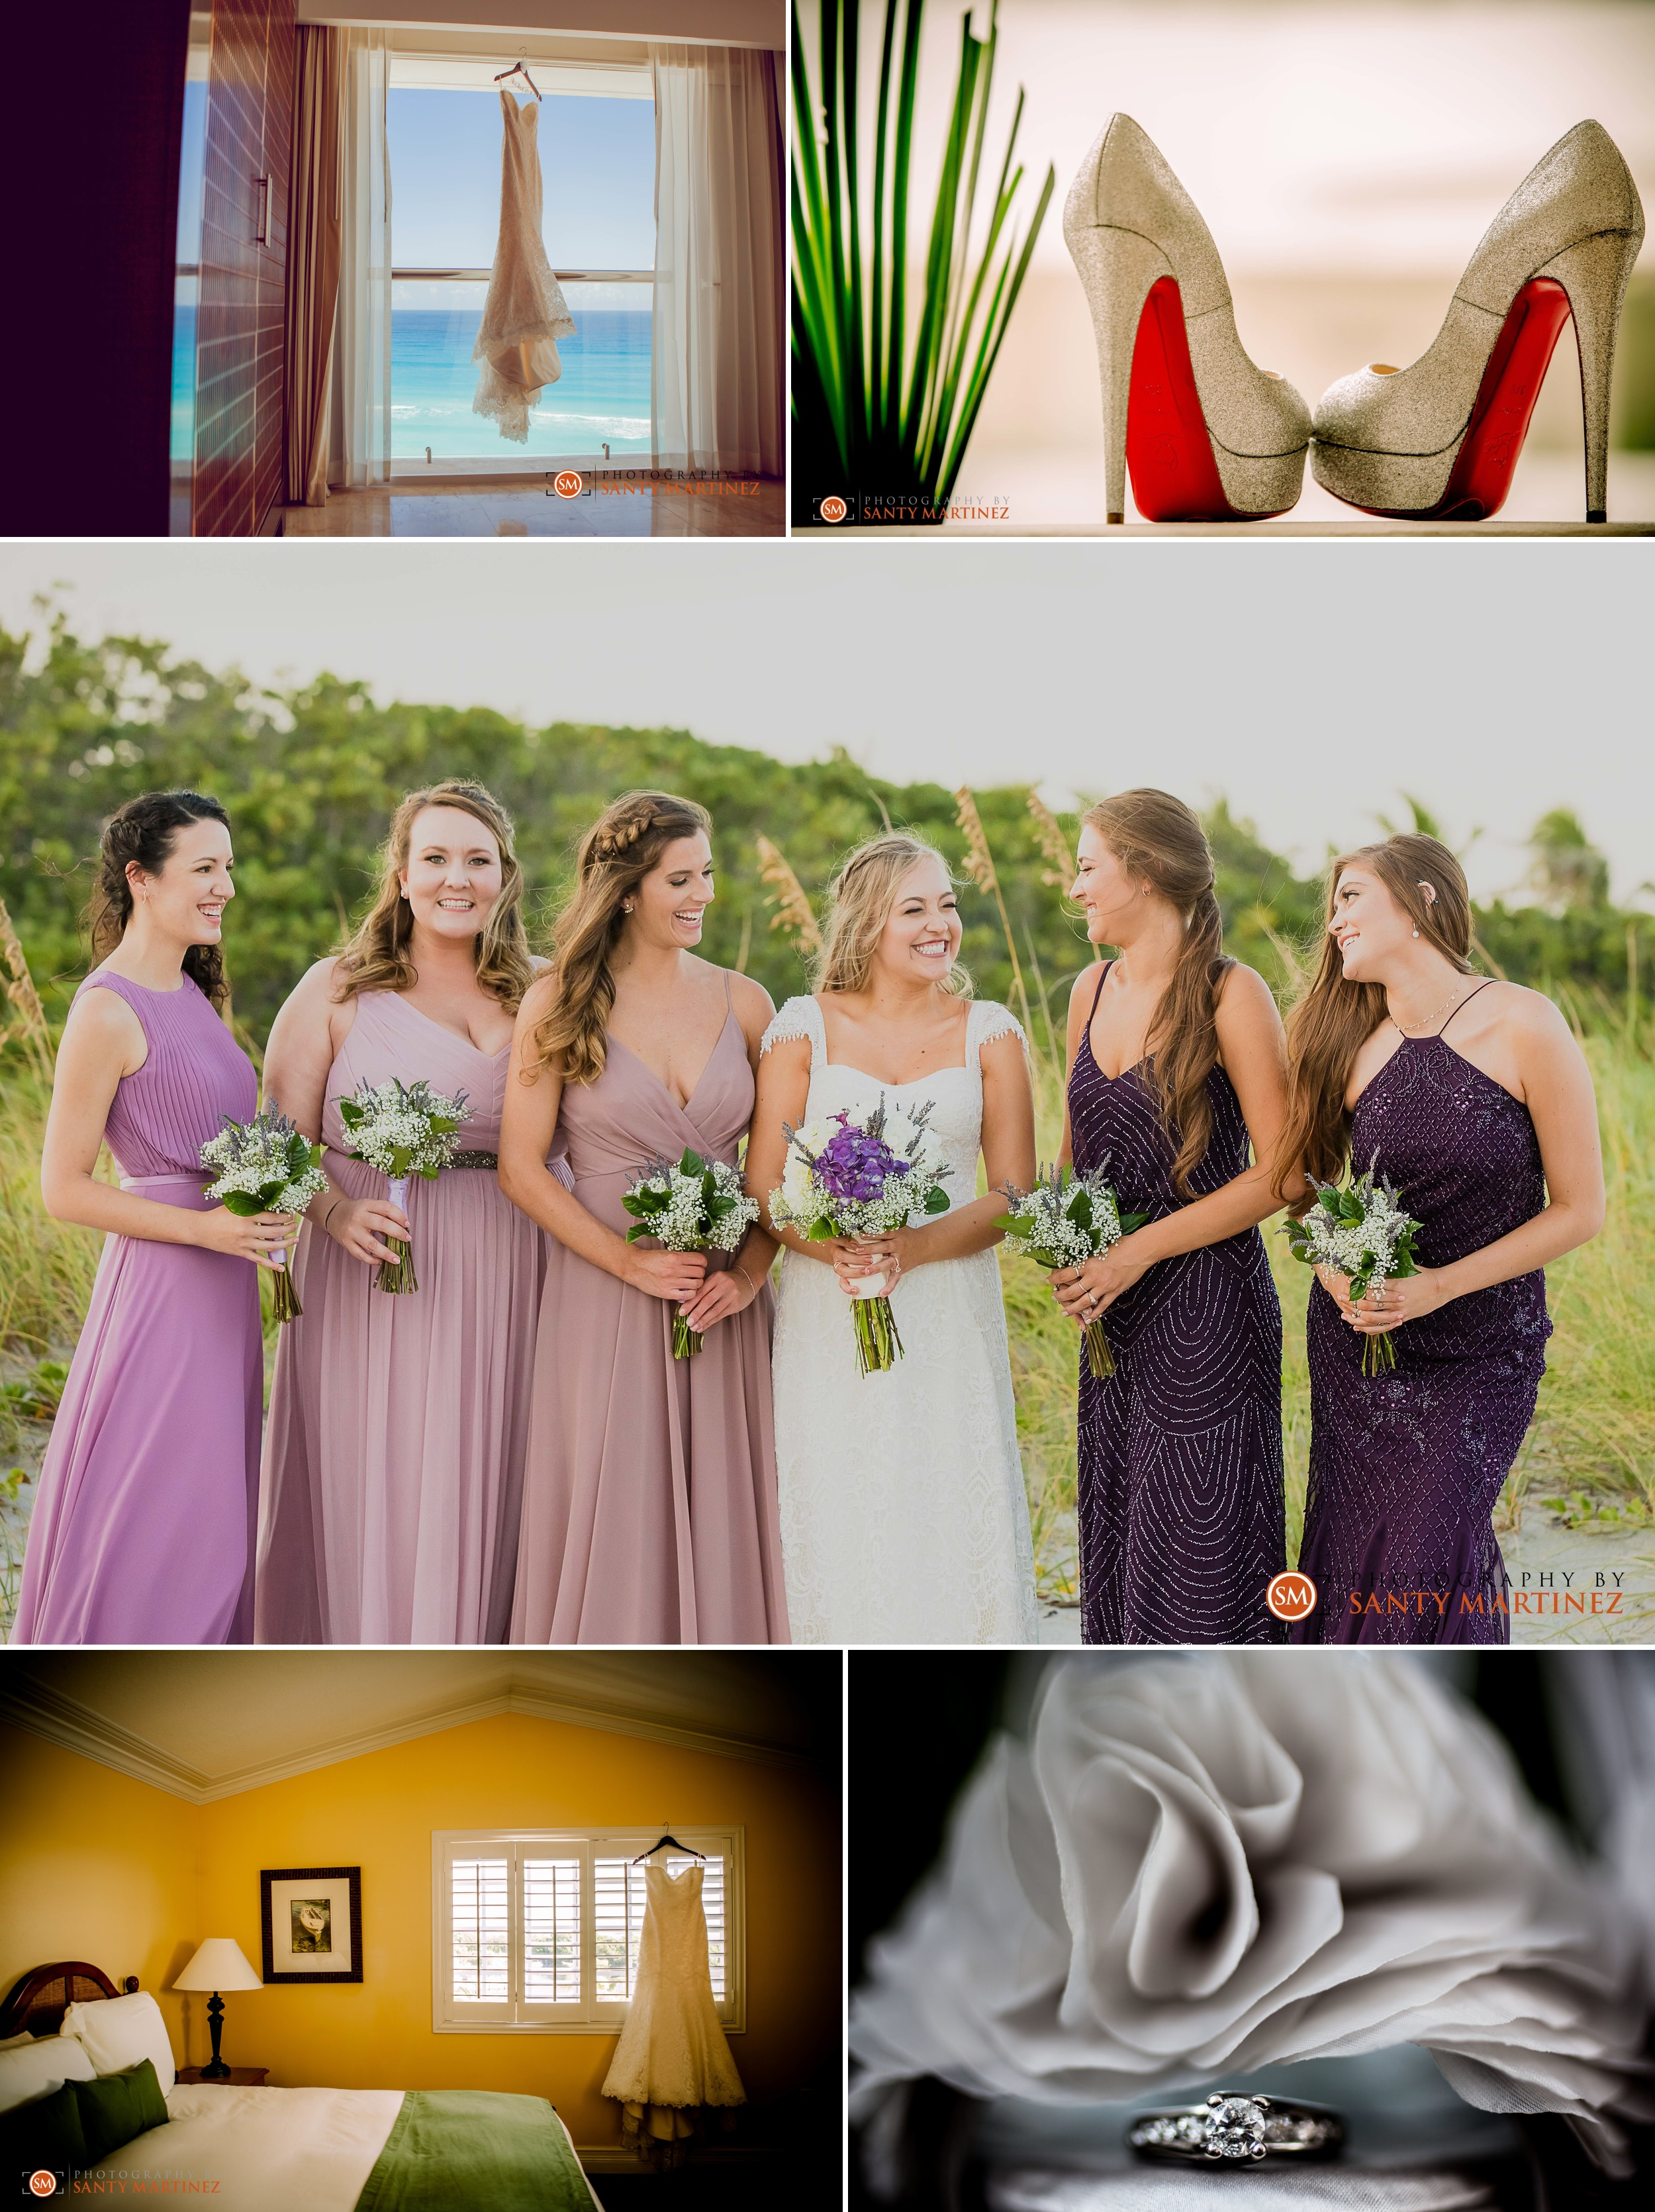 Santy Martinez - Photography - Miami Wedding Photographers 20.jpg